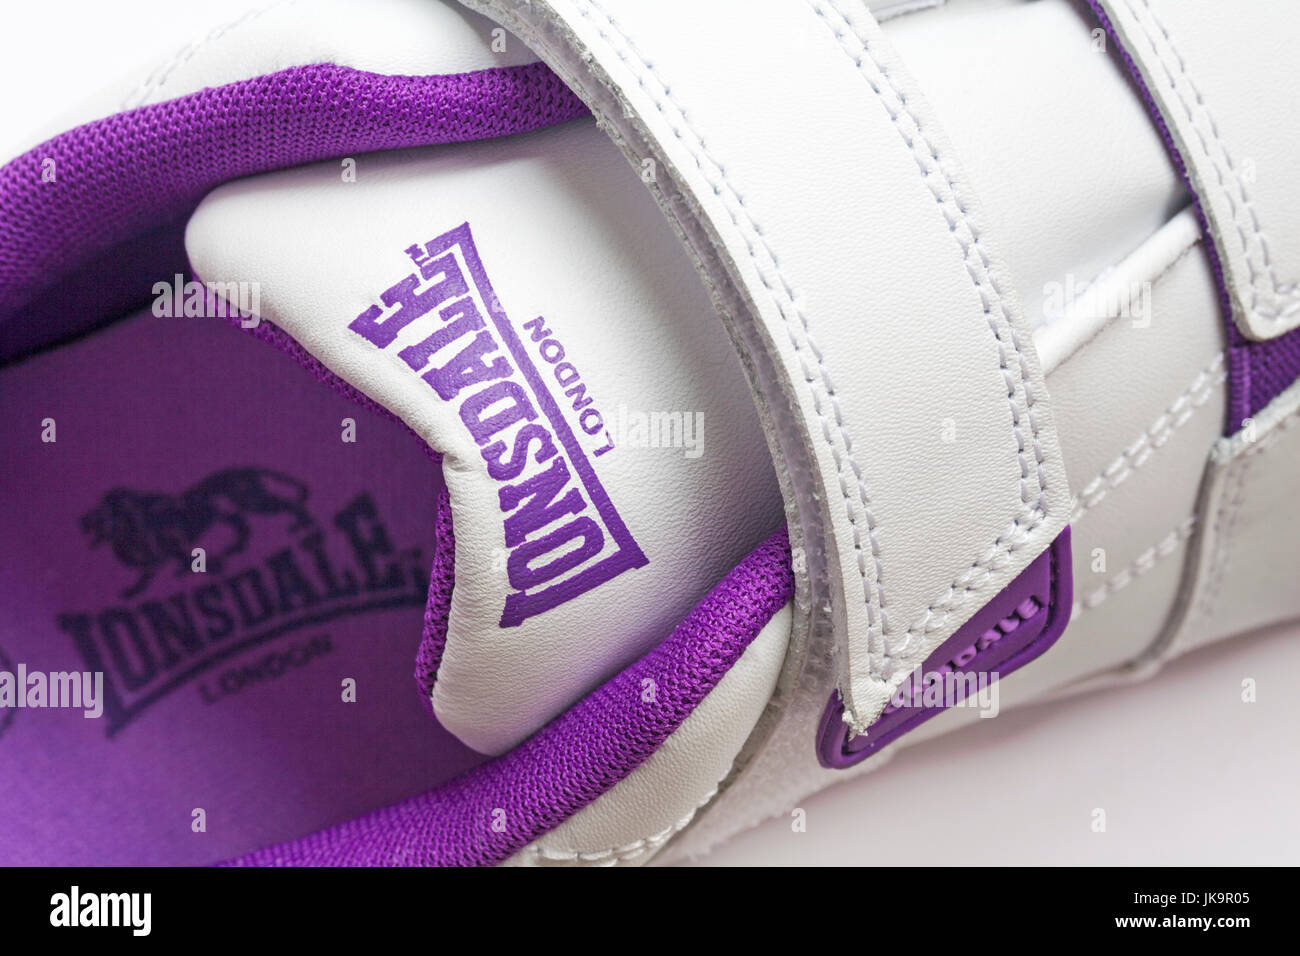 Lonsdale London detail on trainers with logo inside - Stock Image